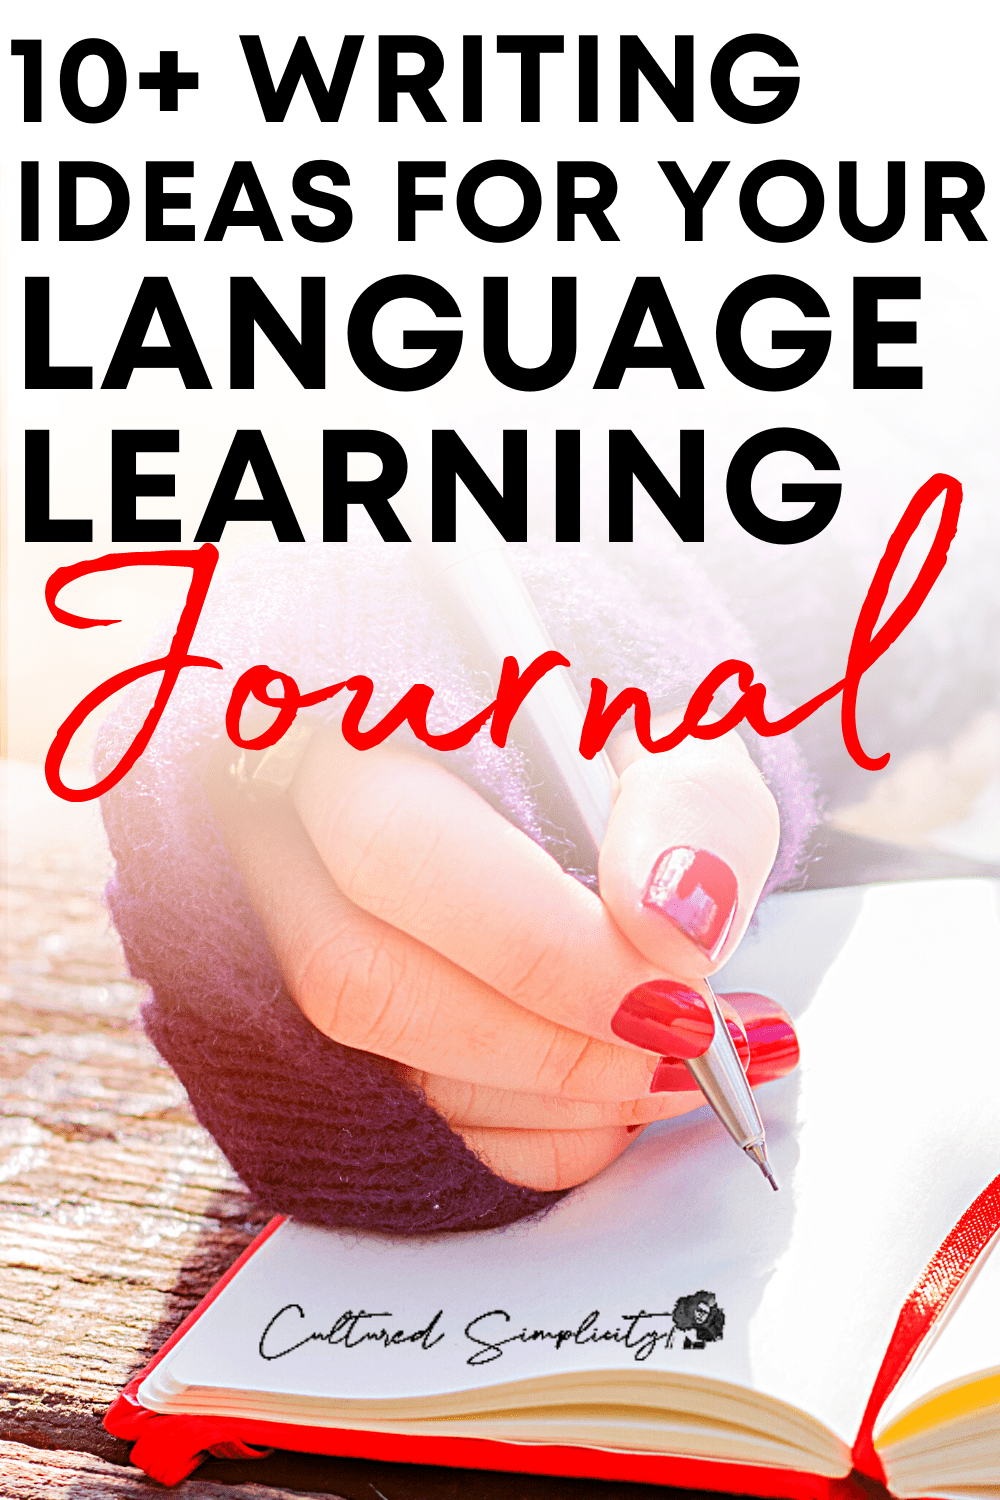 10+ writing ideas for your language learning journal (Reddit Inspired)